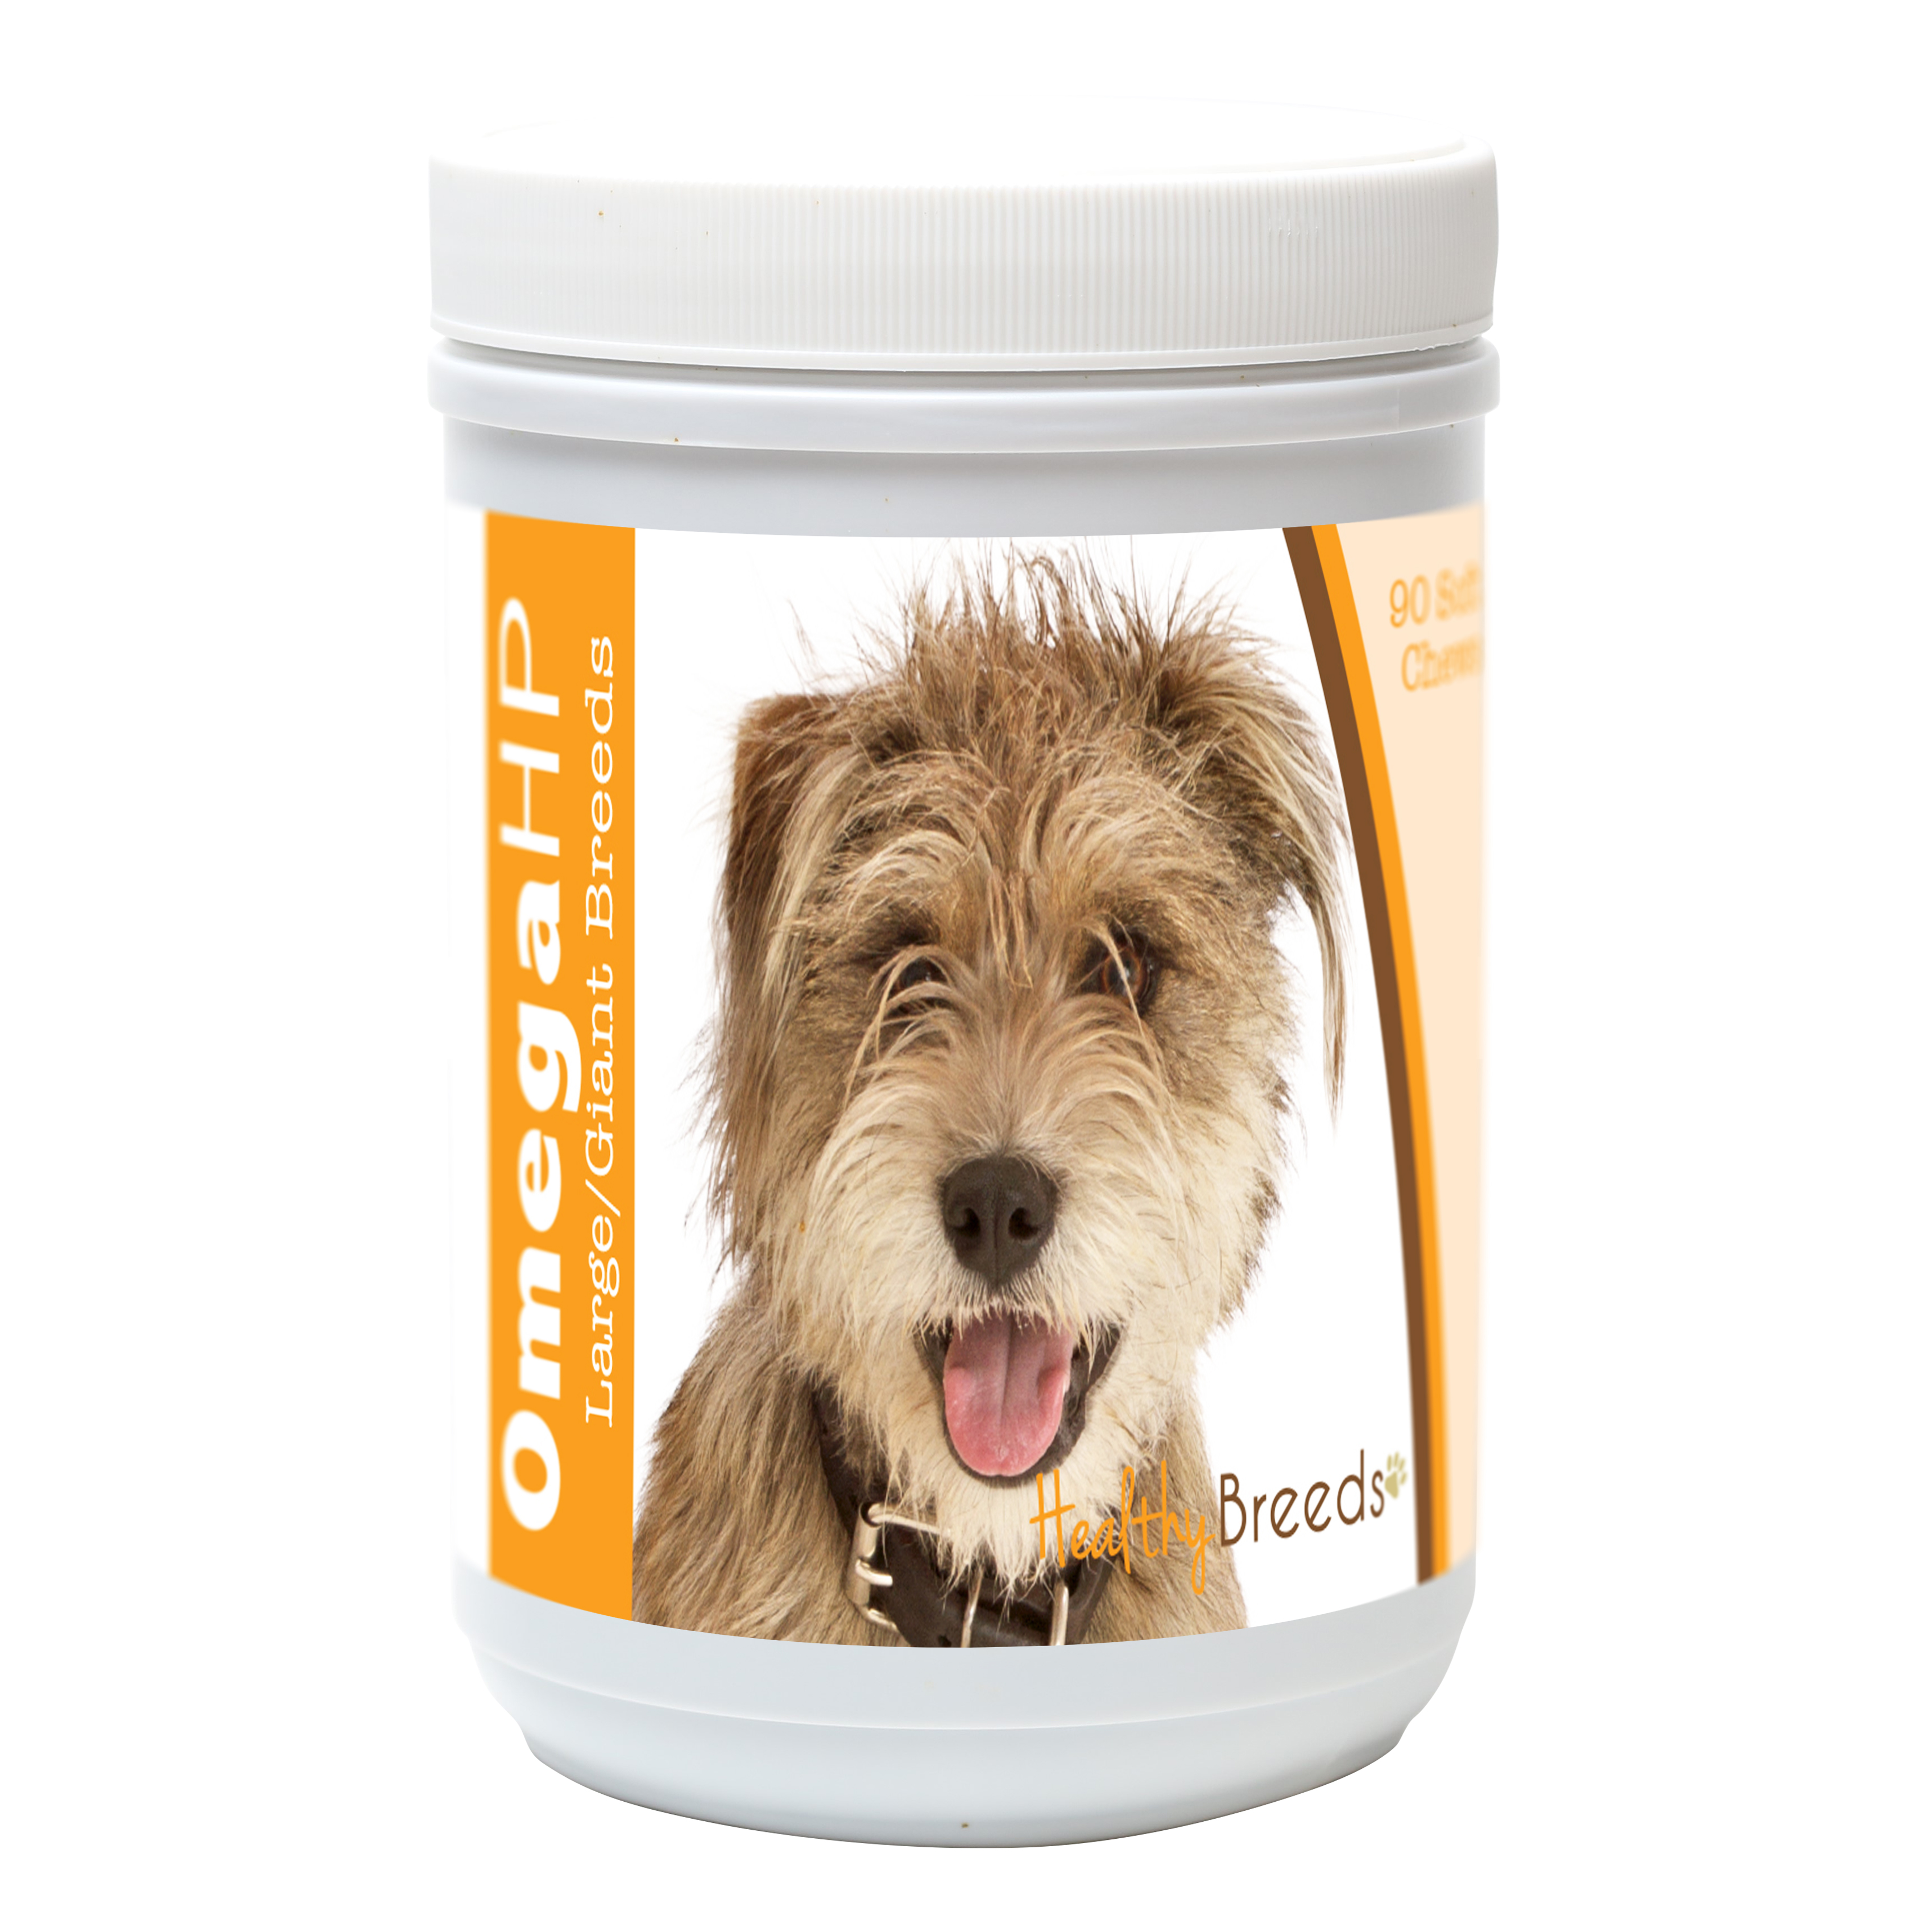 Healthy Breeds Mutt Omega HP Fatty Acid Skin and Coat Support Soft Chews